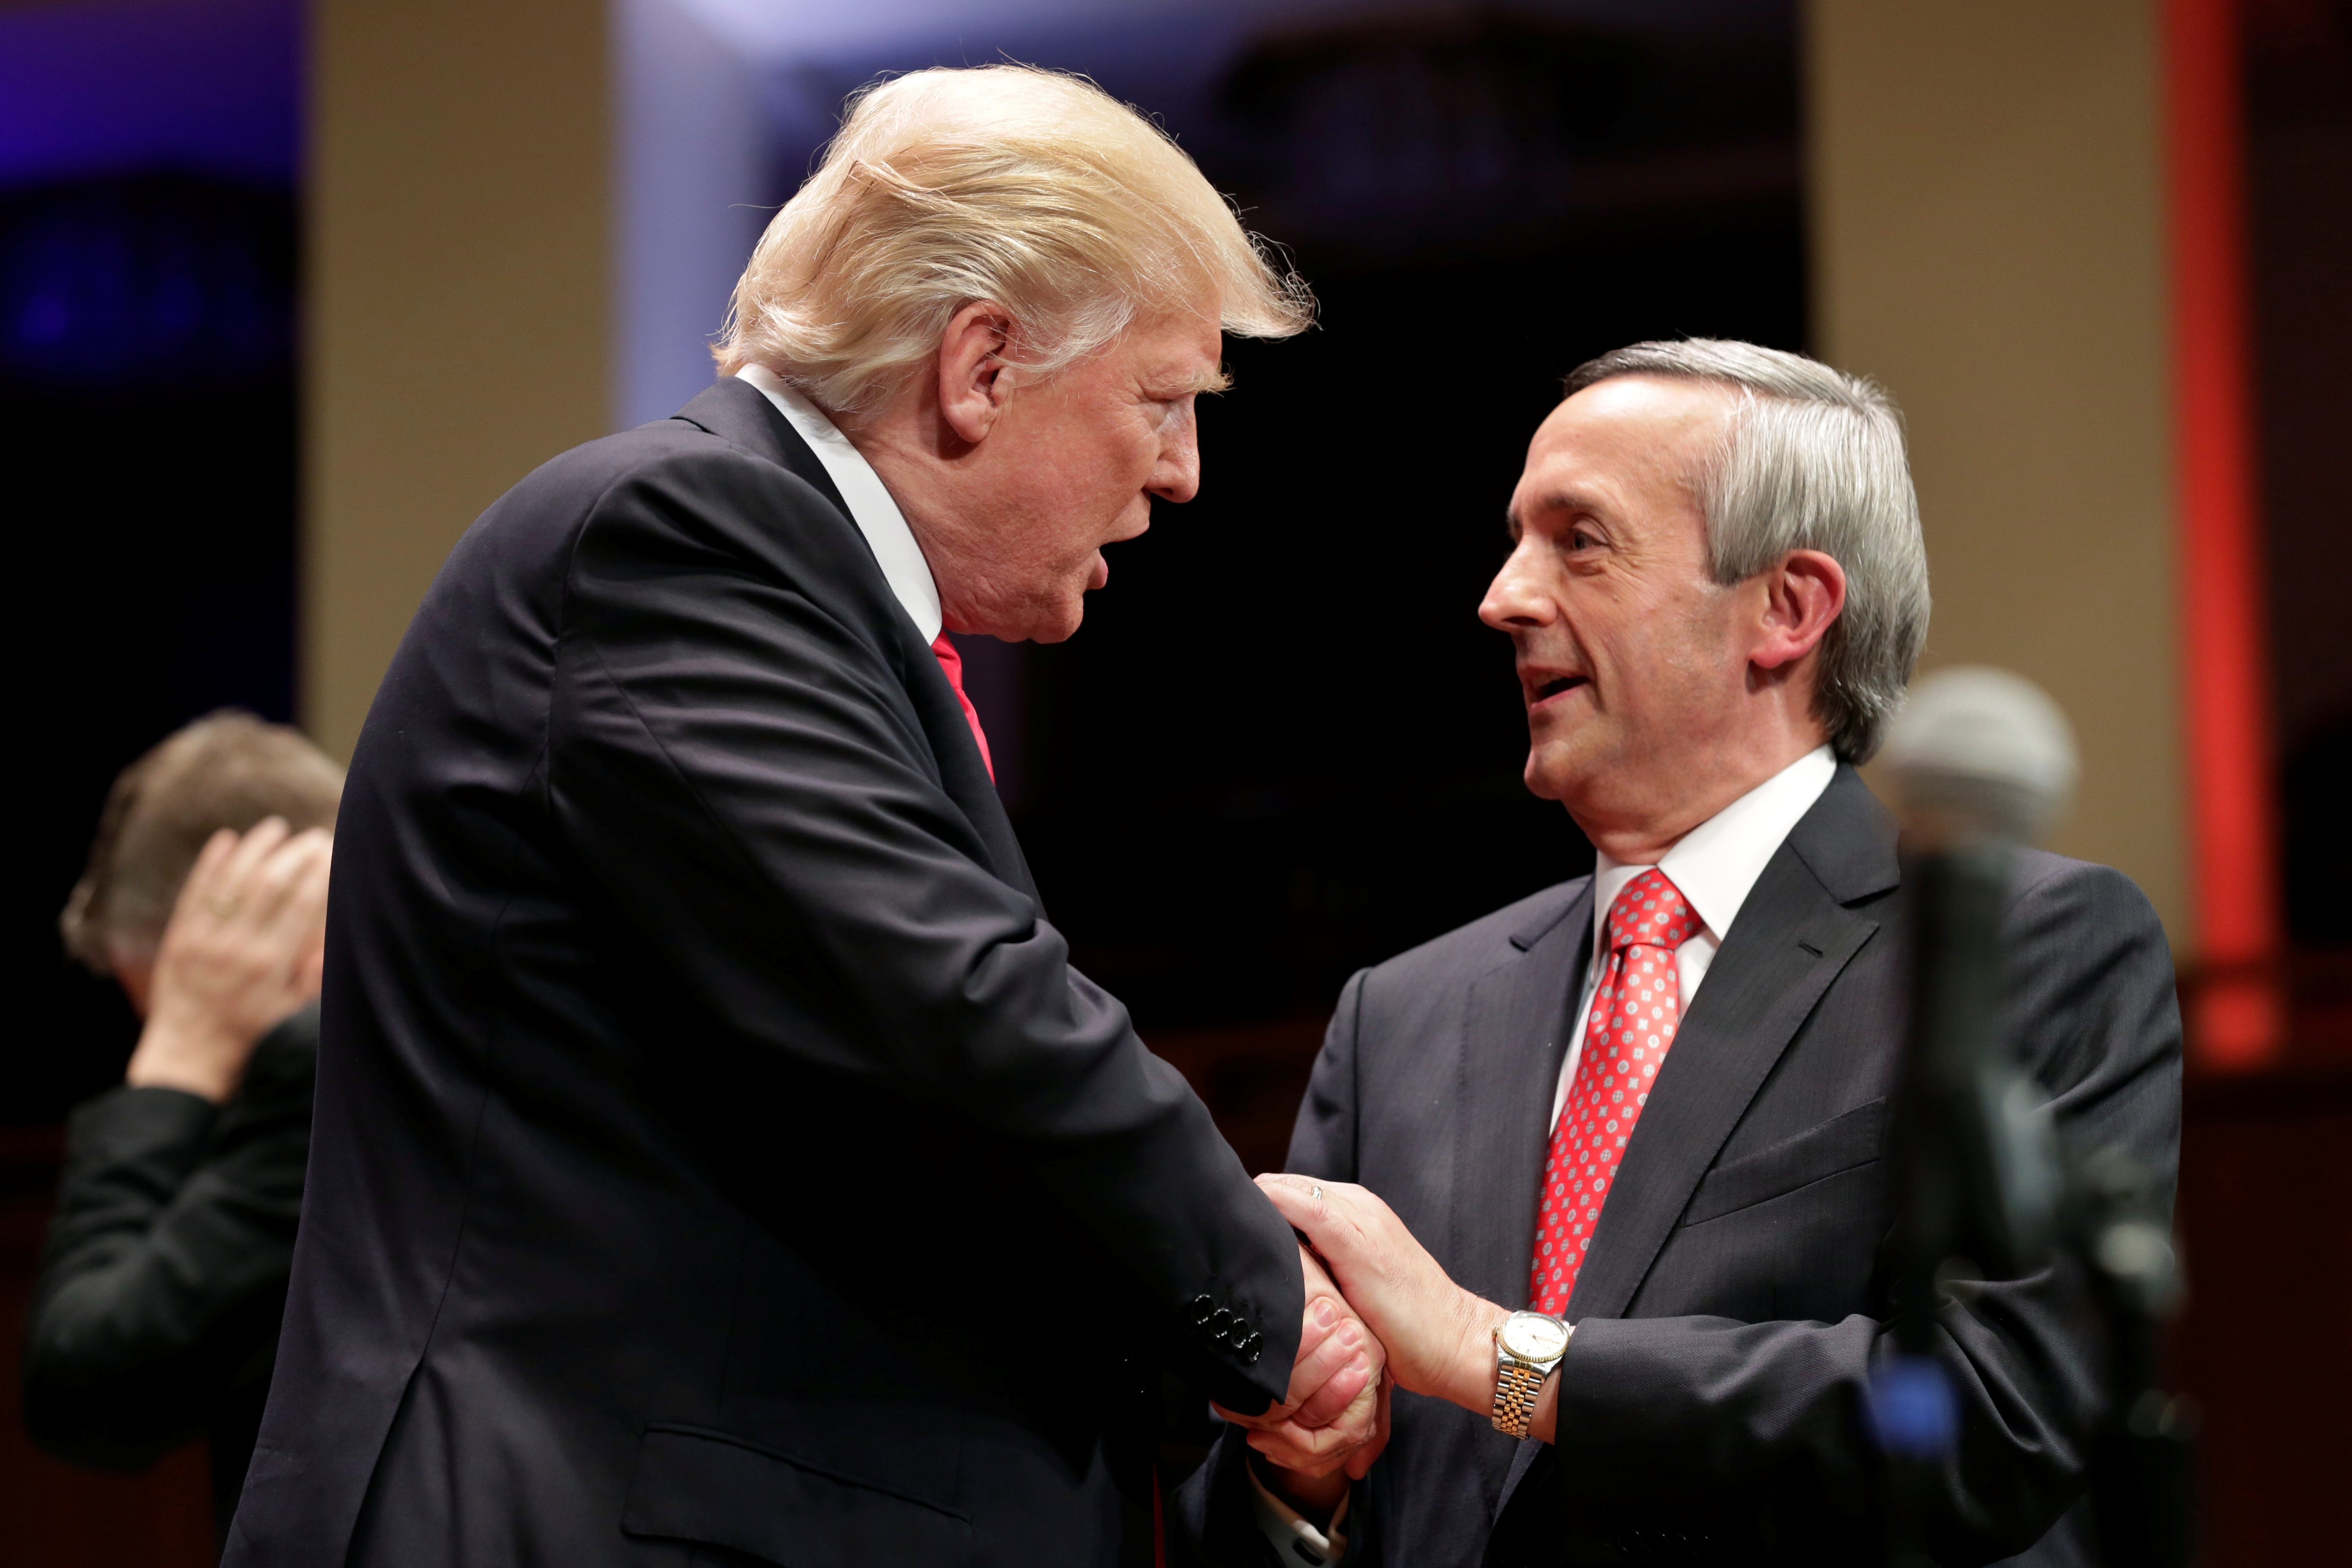 Pastor Robert Jeffress Acknowledges Biden Won Presidential Election, Encourages Christians to 'Pray Fervently' for Him